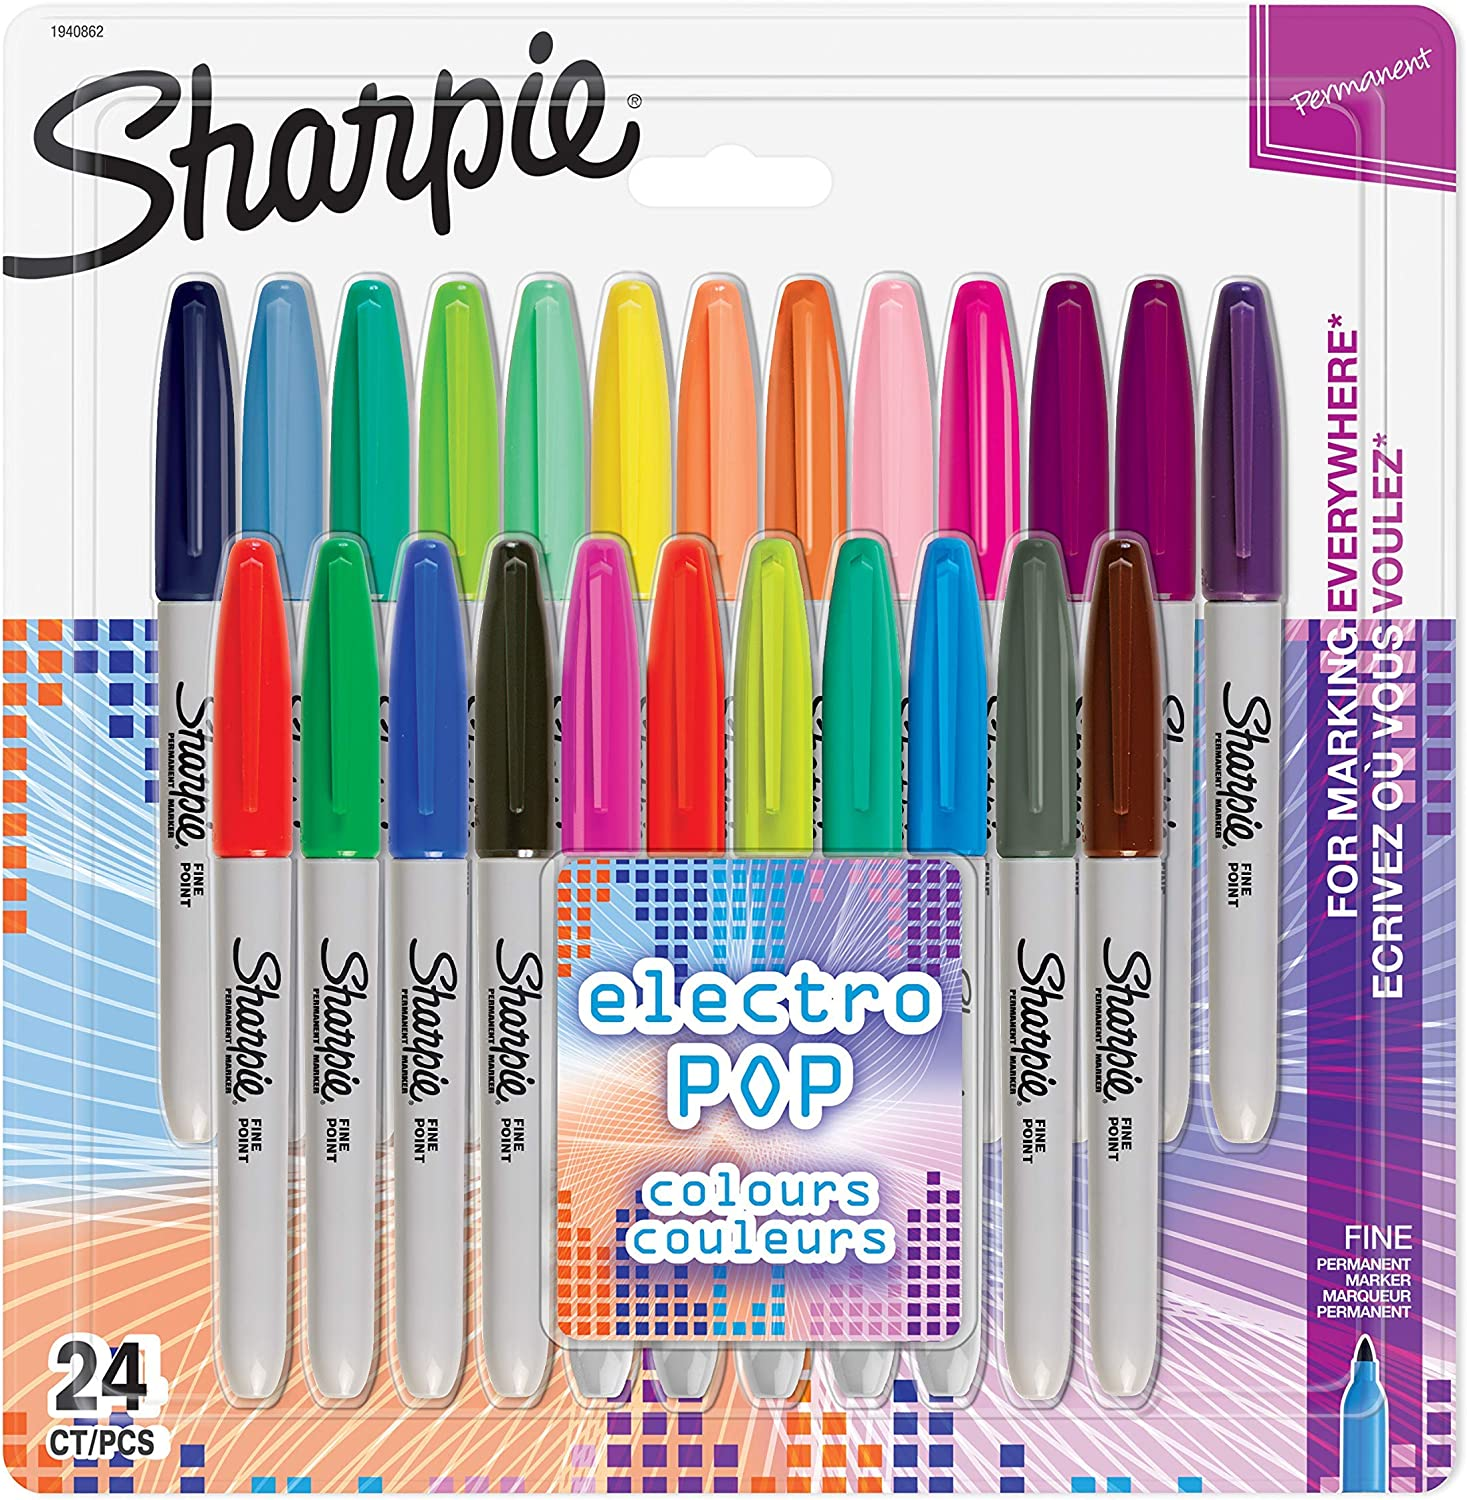 LIMITED EDITION SHARPIE SET 25 PENS BRAND NEW SET